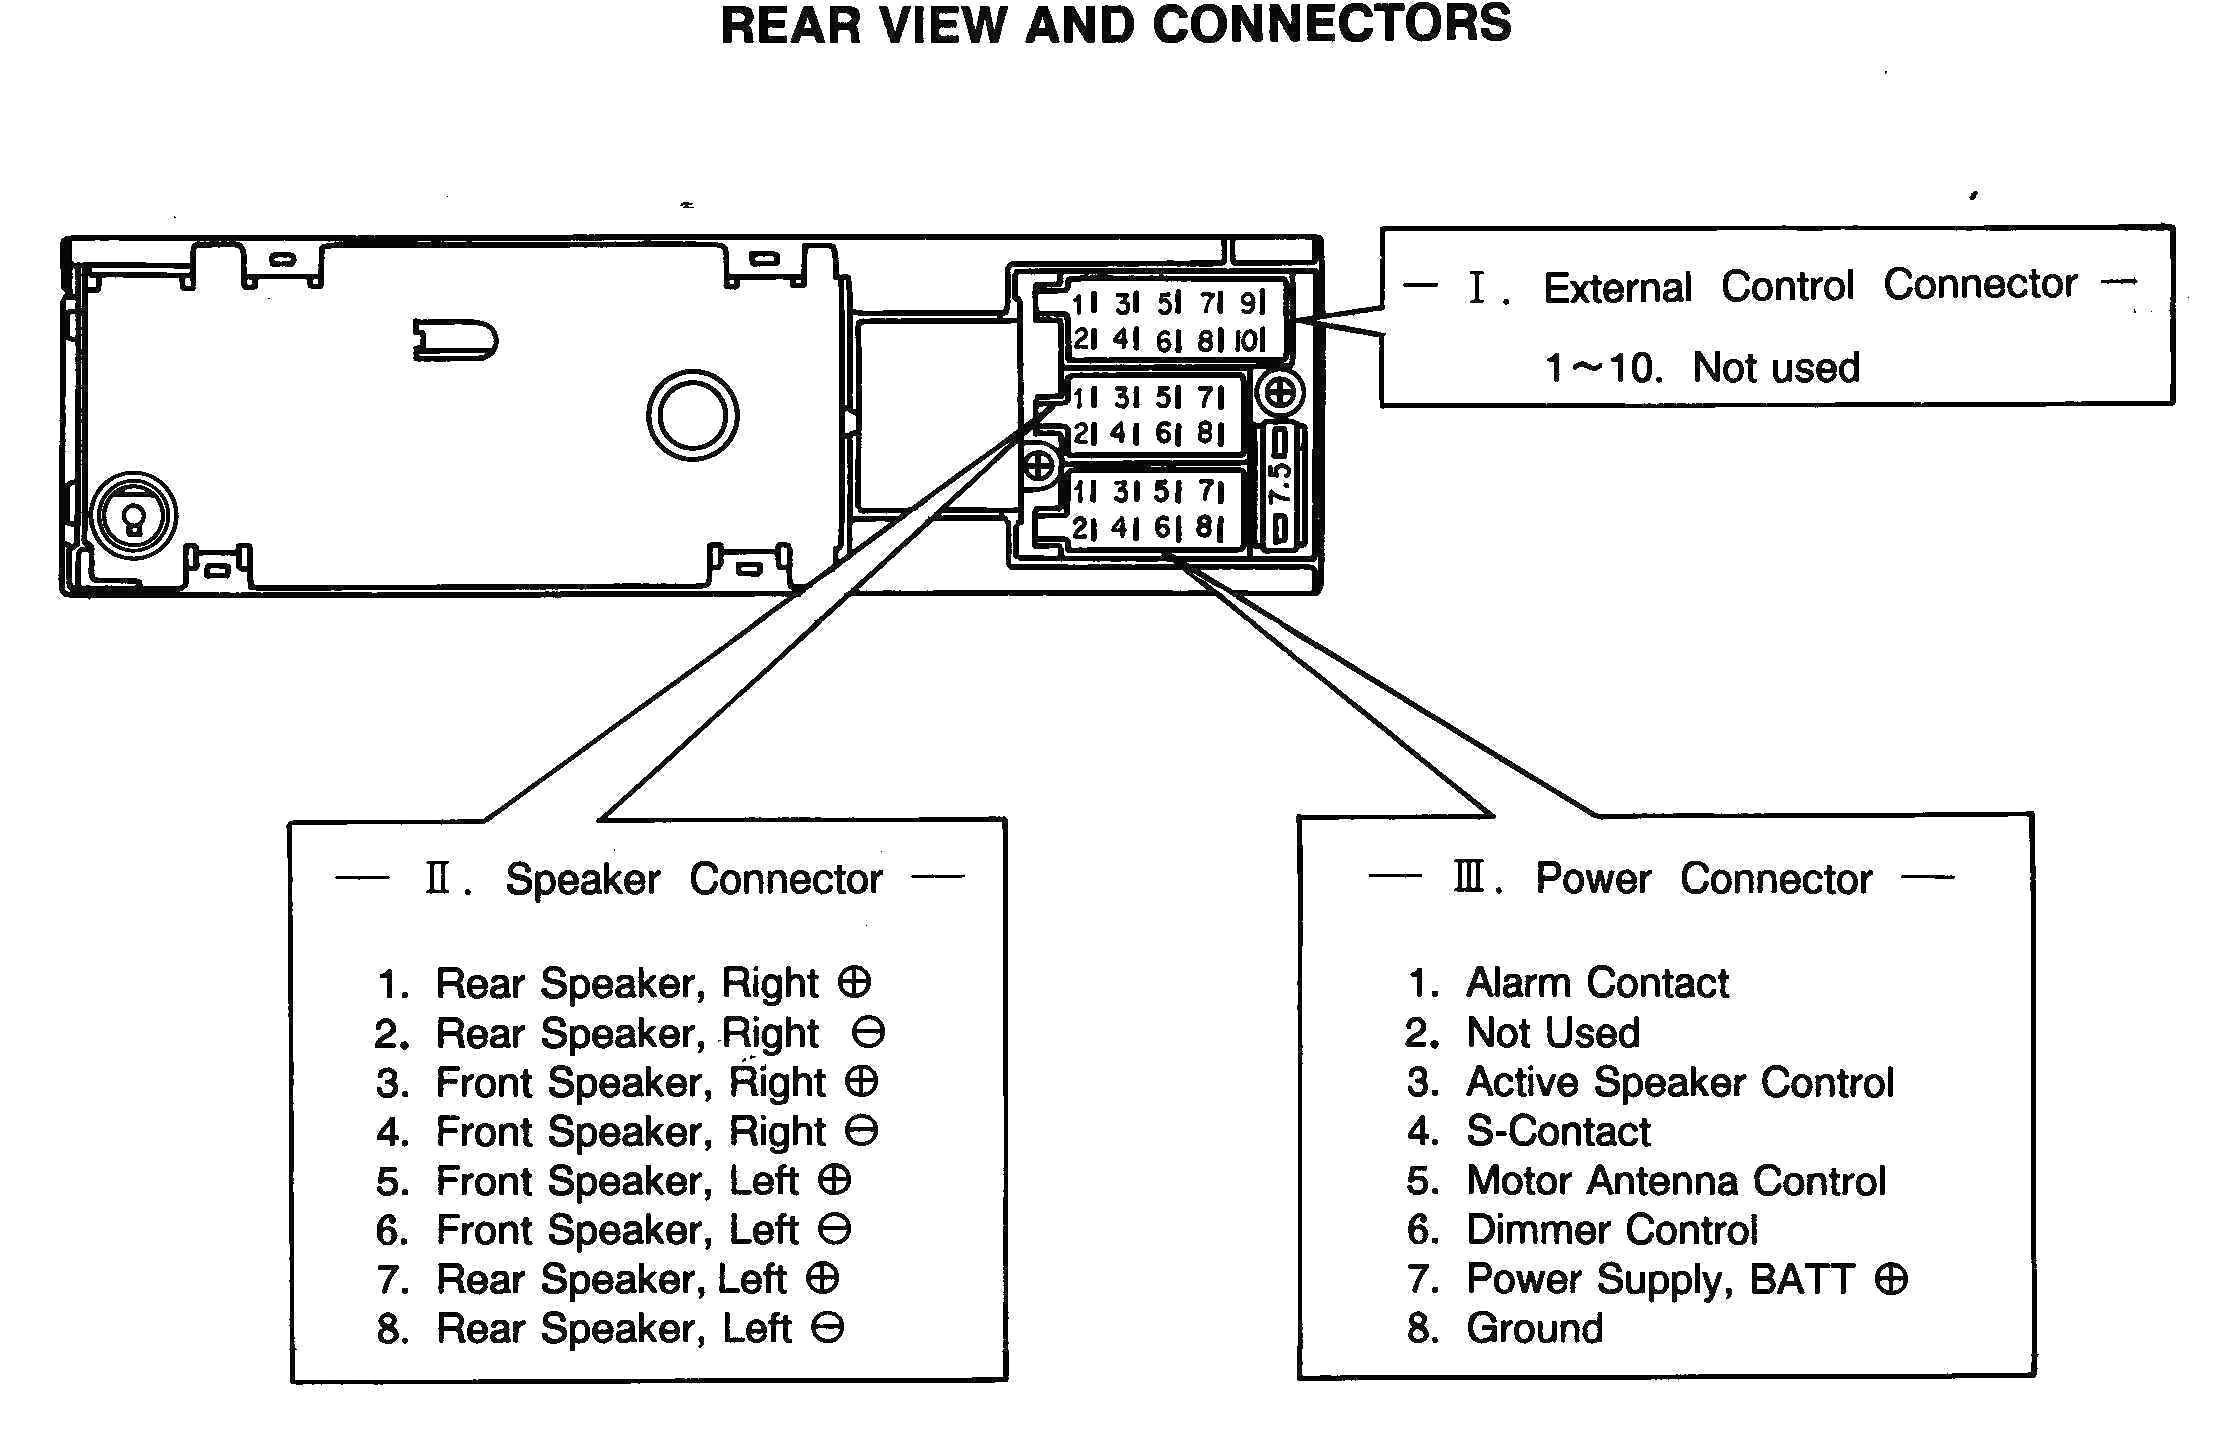 Vw 1 8 T Engine Diagram 2 Vw Stereo Wiring Harness Experts Wiring Diagram • Of Vw 1 8 T Engine Diagram 2